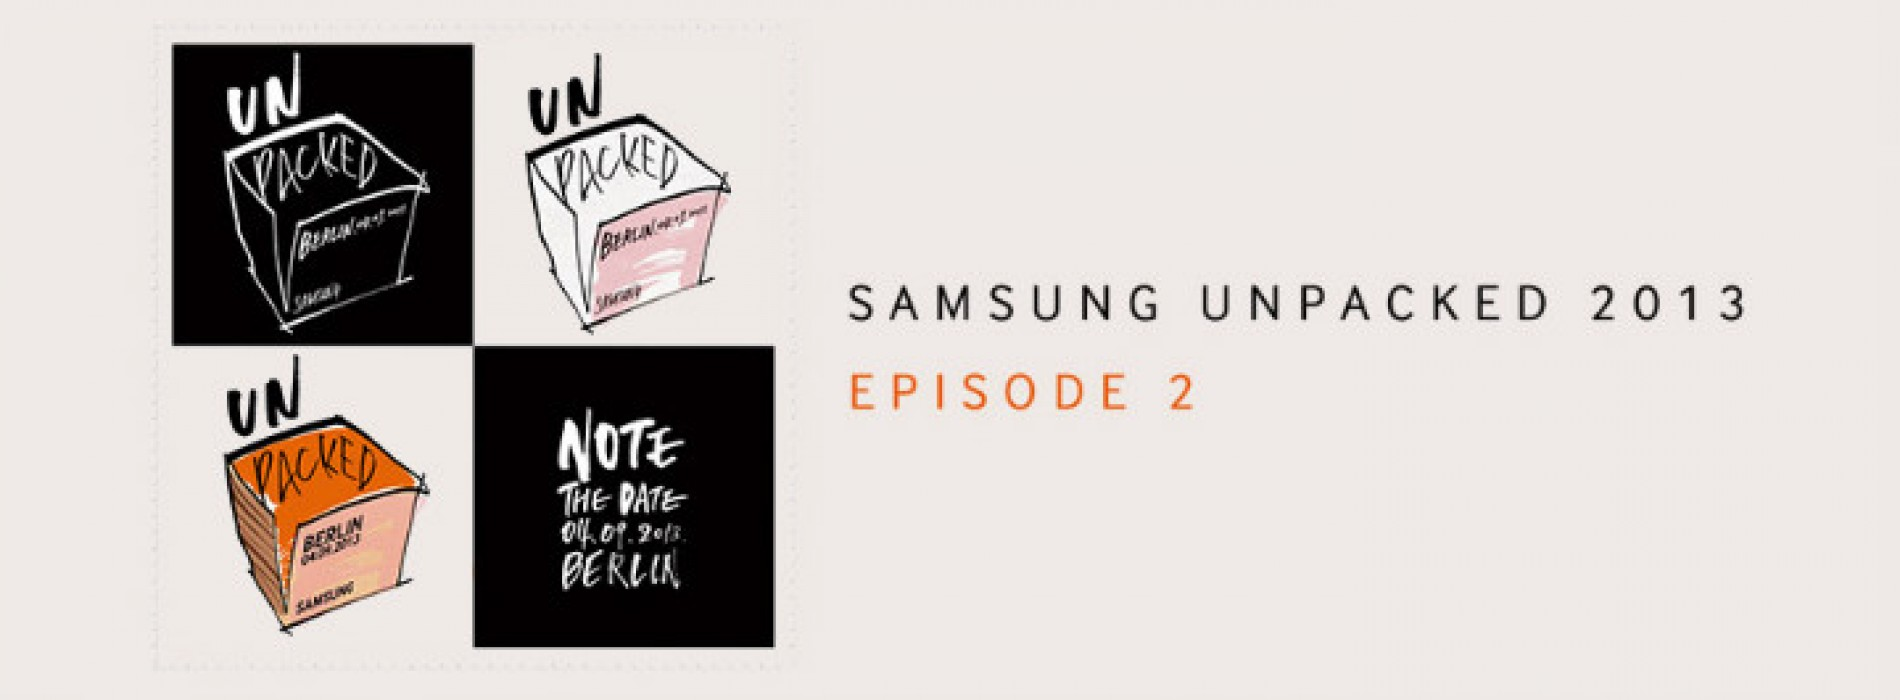 Watch Samsung's unveiling of the Galaxy Note 3 and Galaxy Gear